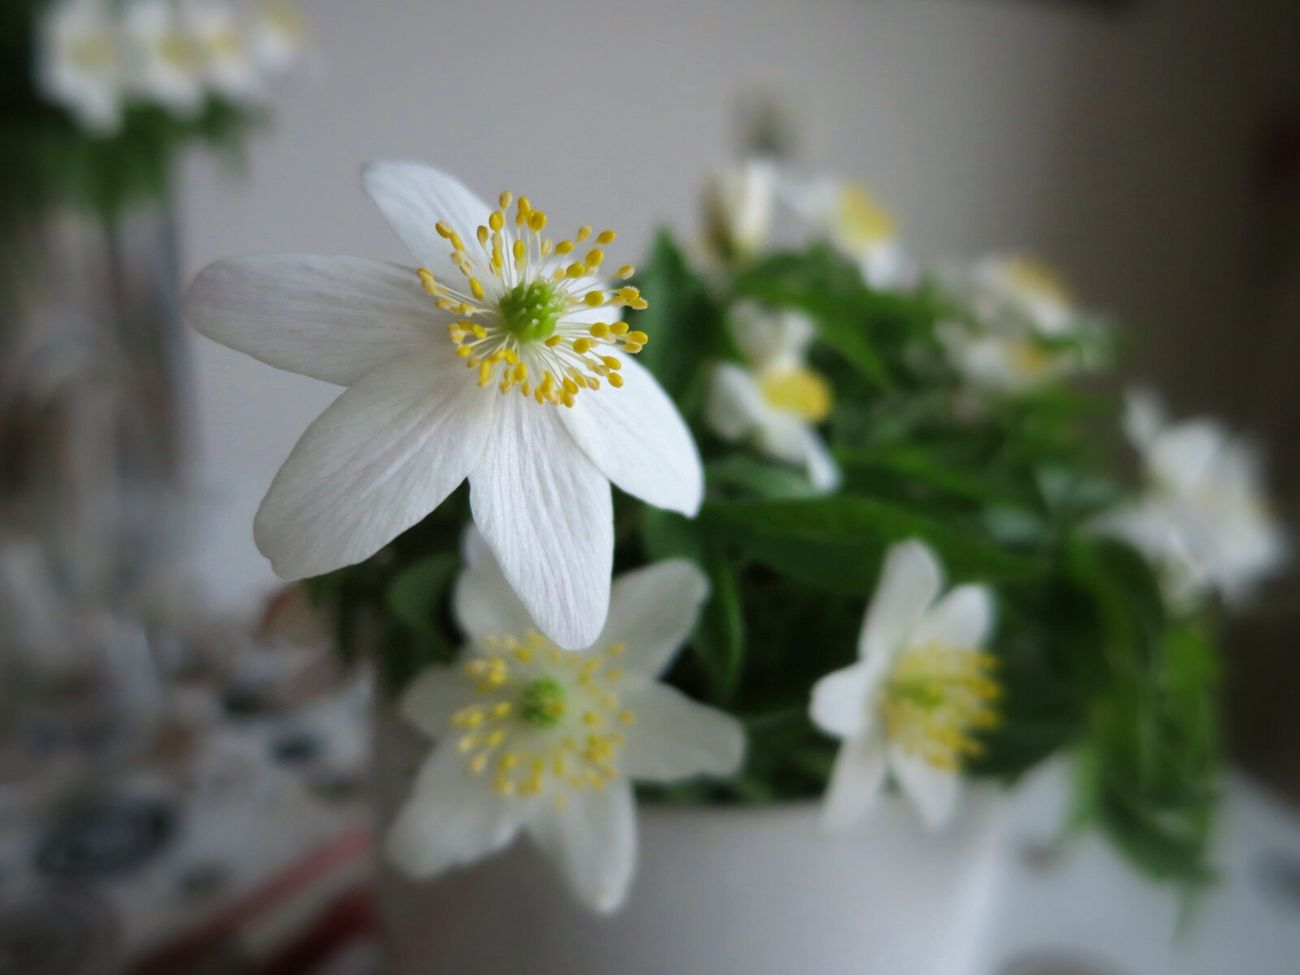 Wood anemone at mothers. Spring Indoor Spring Flowers Wood Anemone